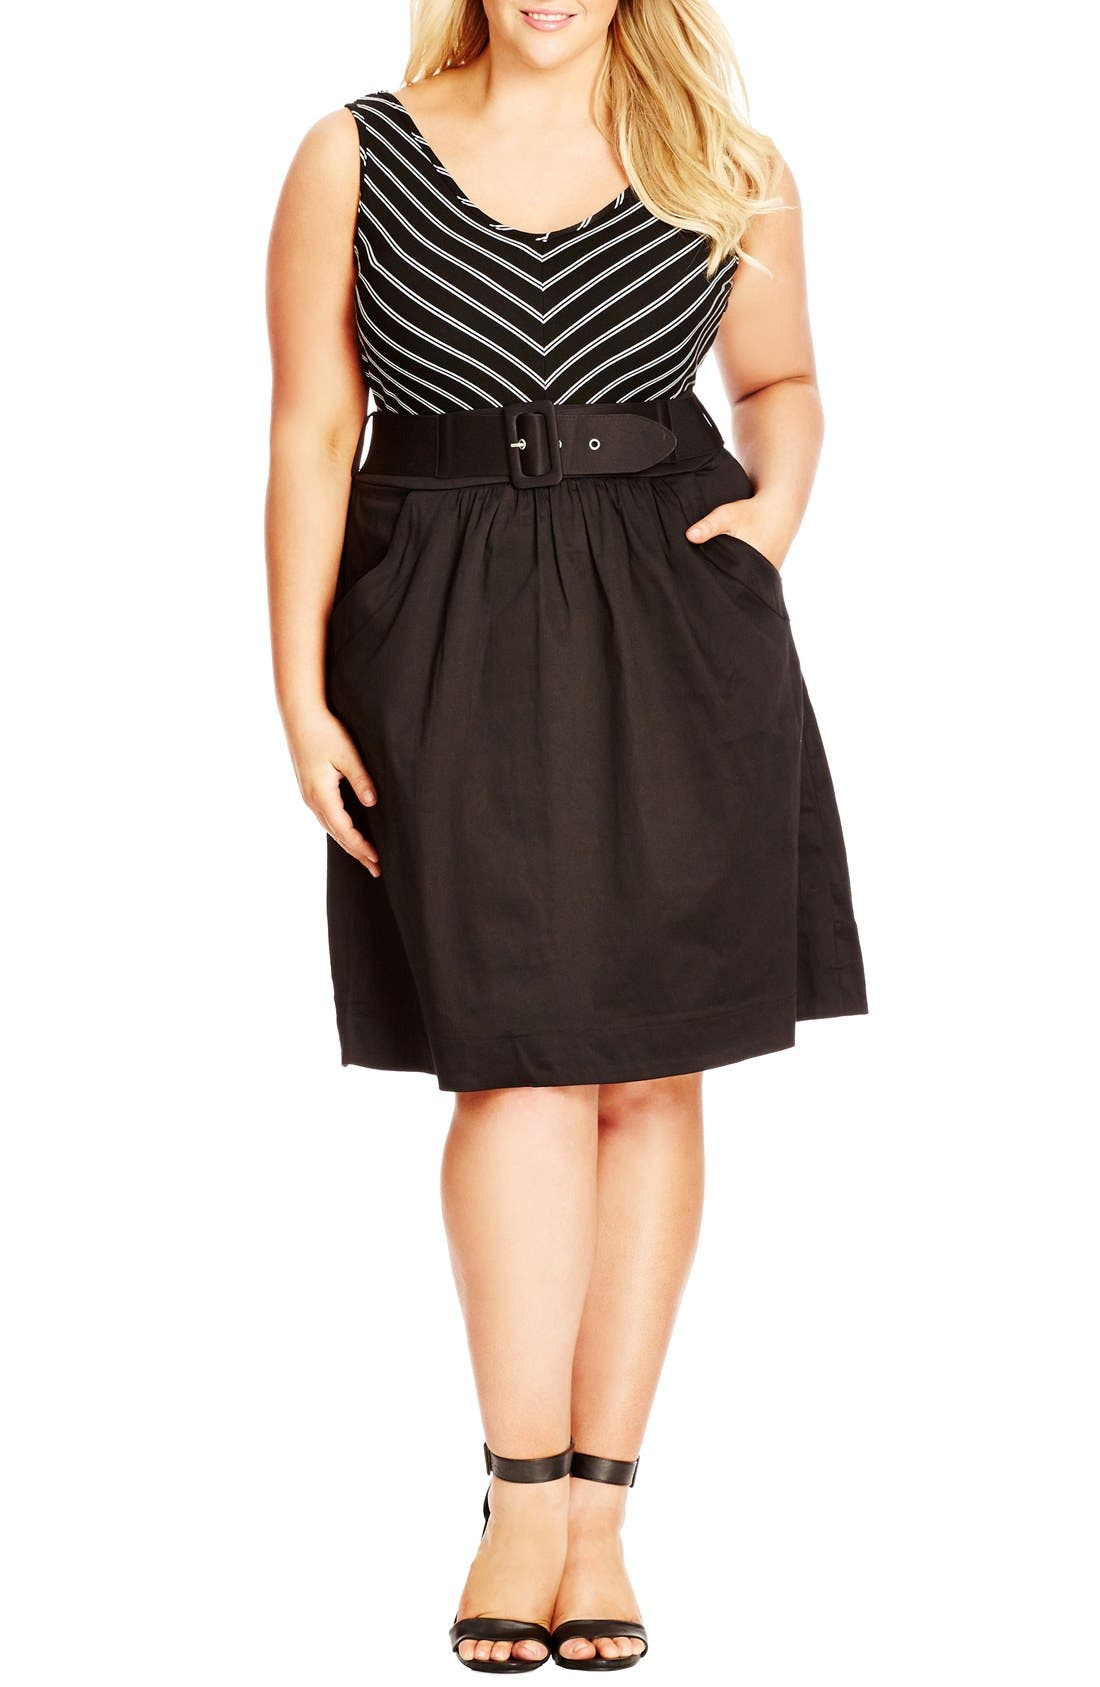 CITY CHIC Ahoy Dress